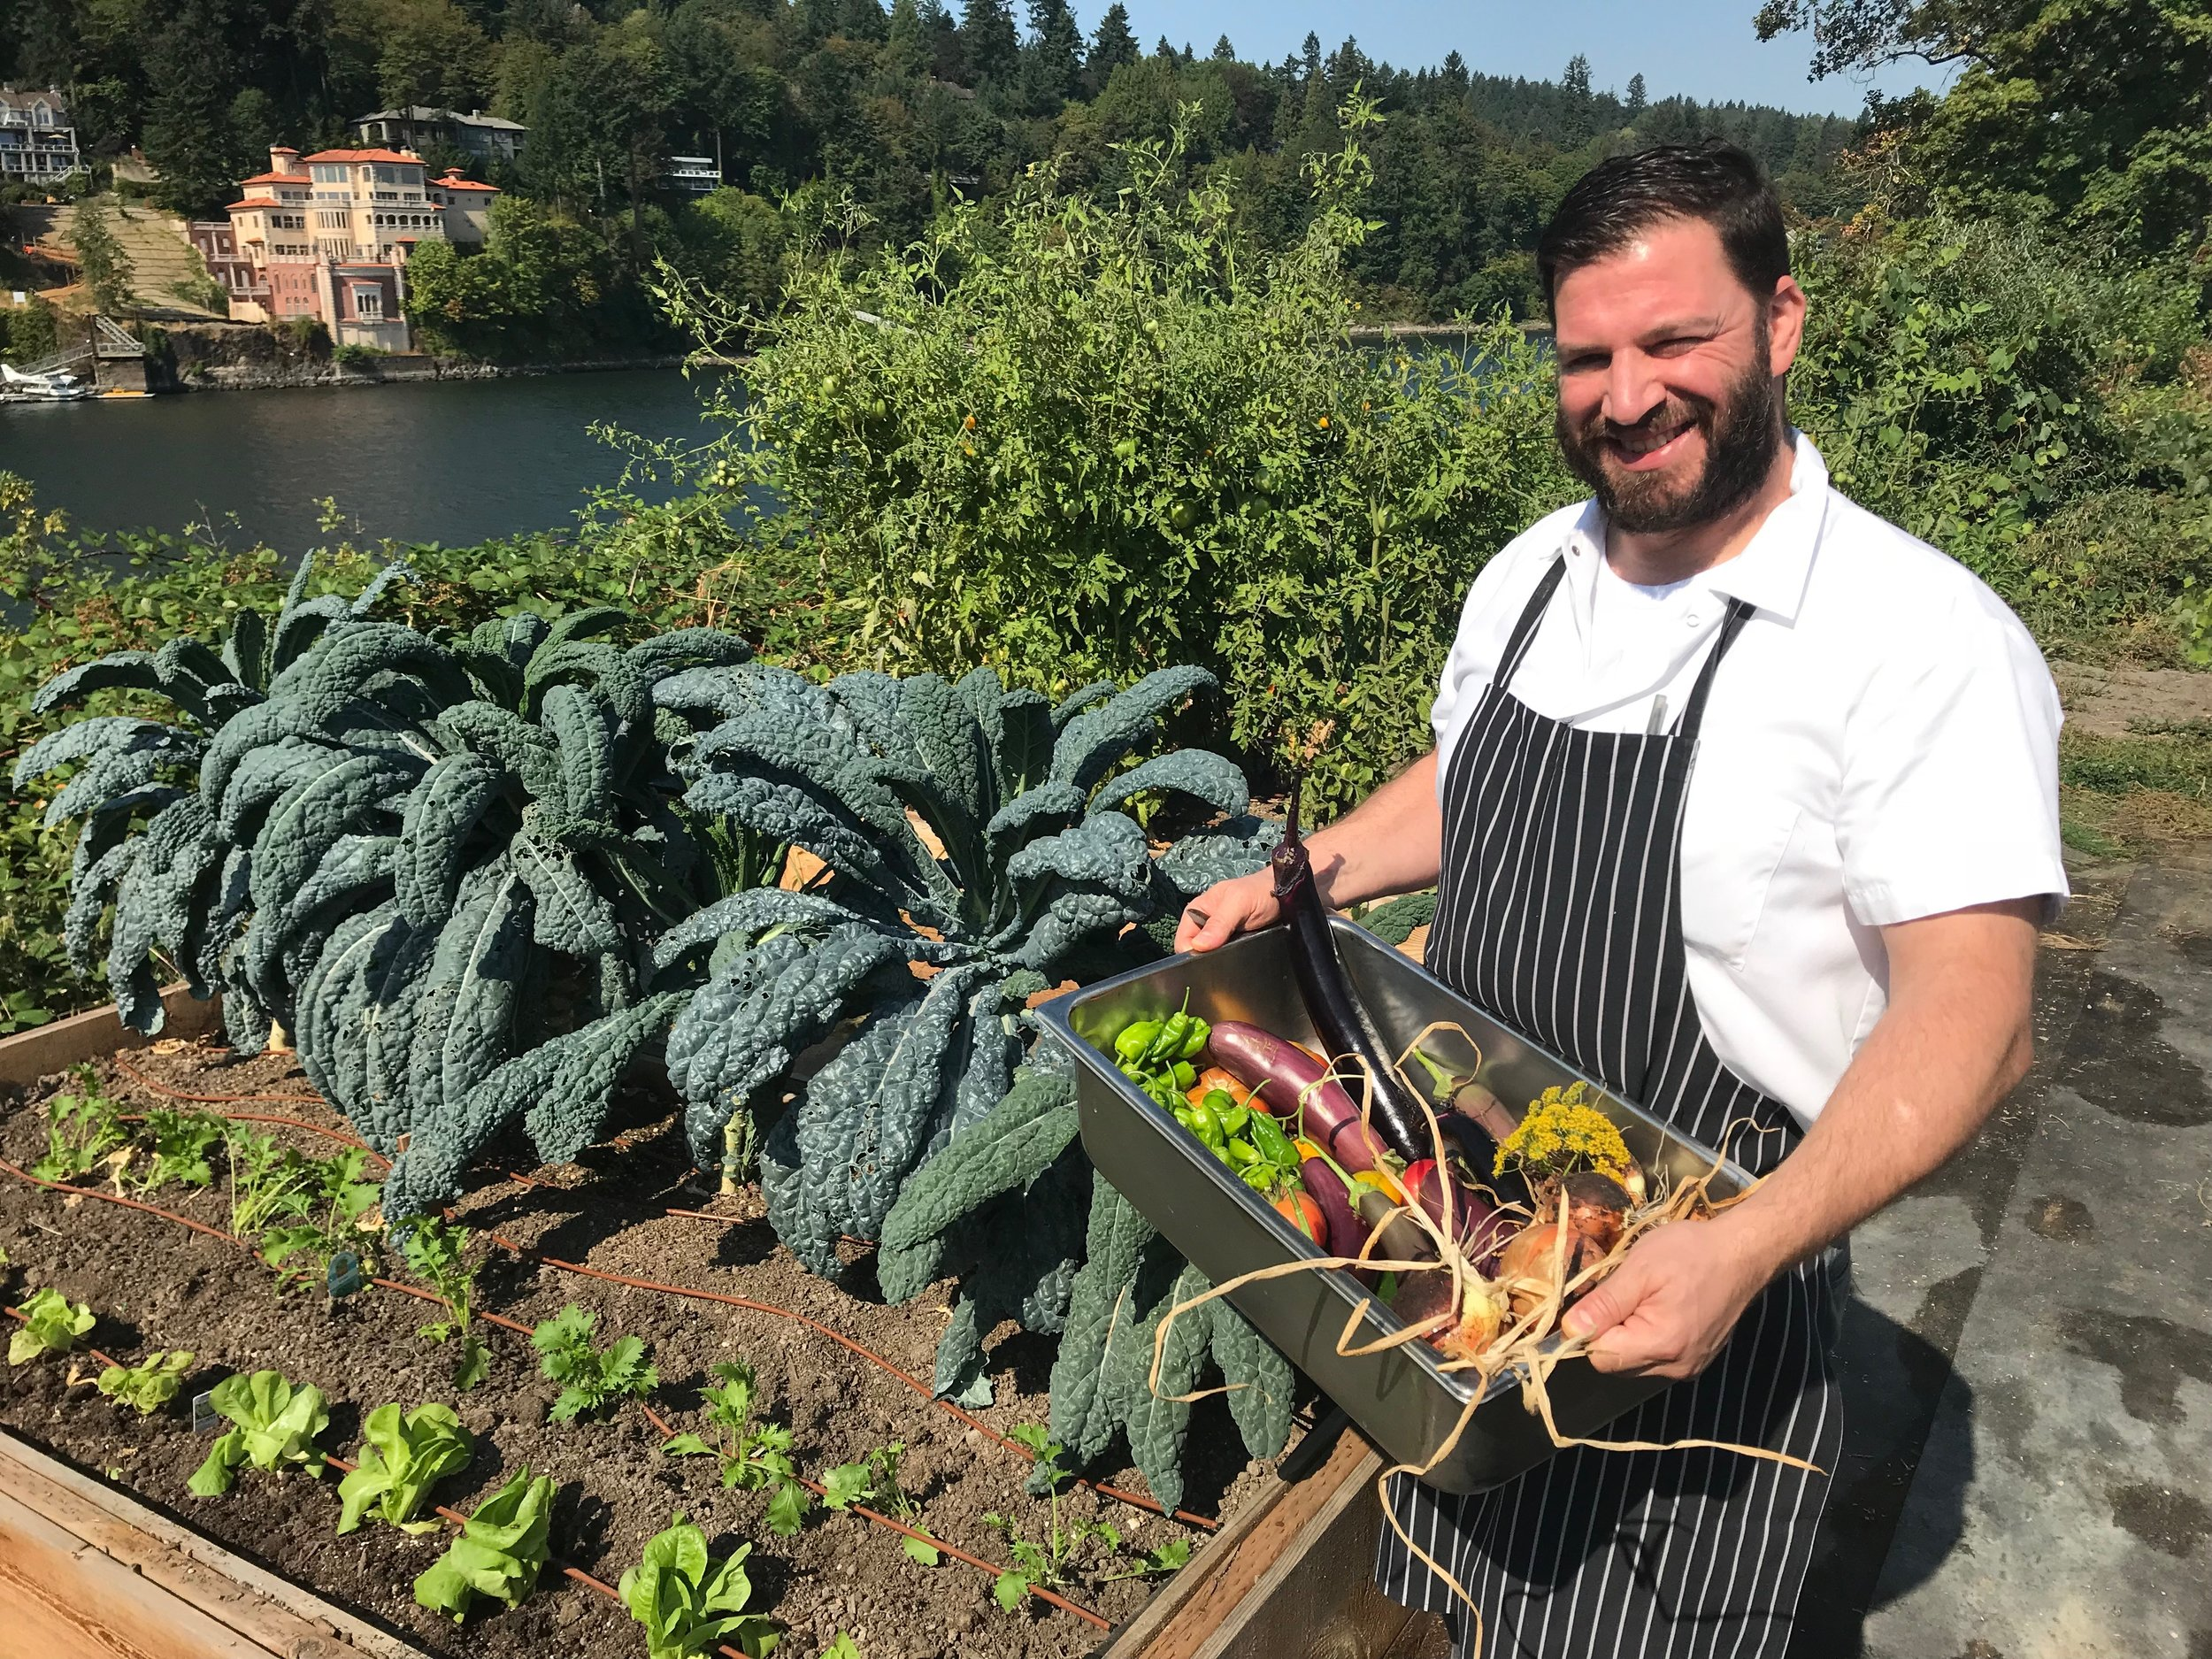 Executive Chef Nadav Bashan with a harvest for the Waverly kitchen